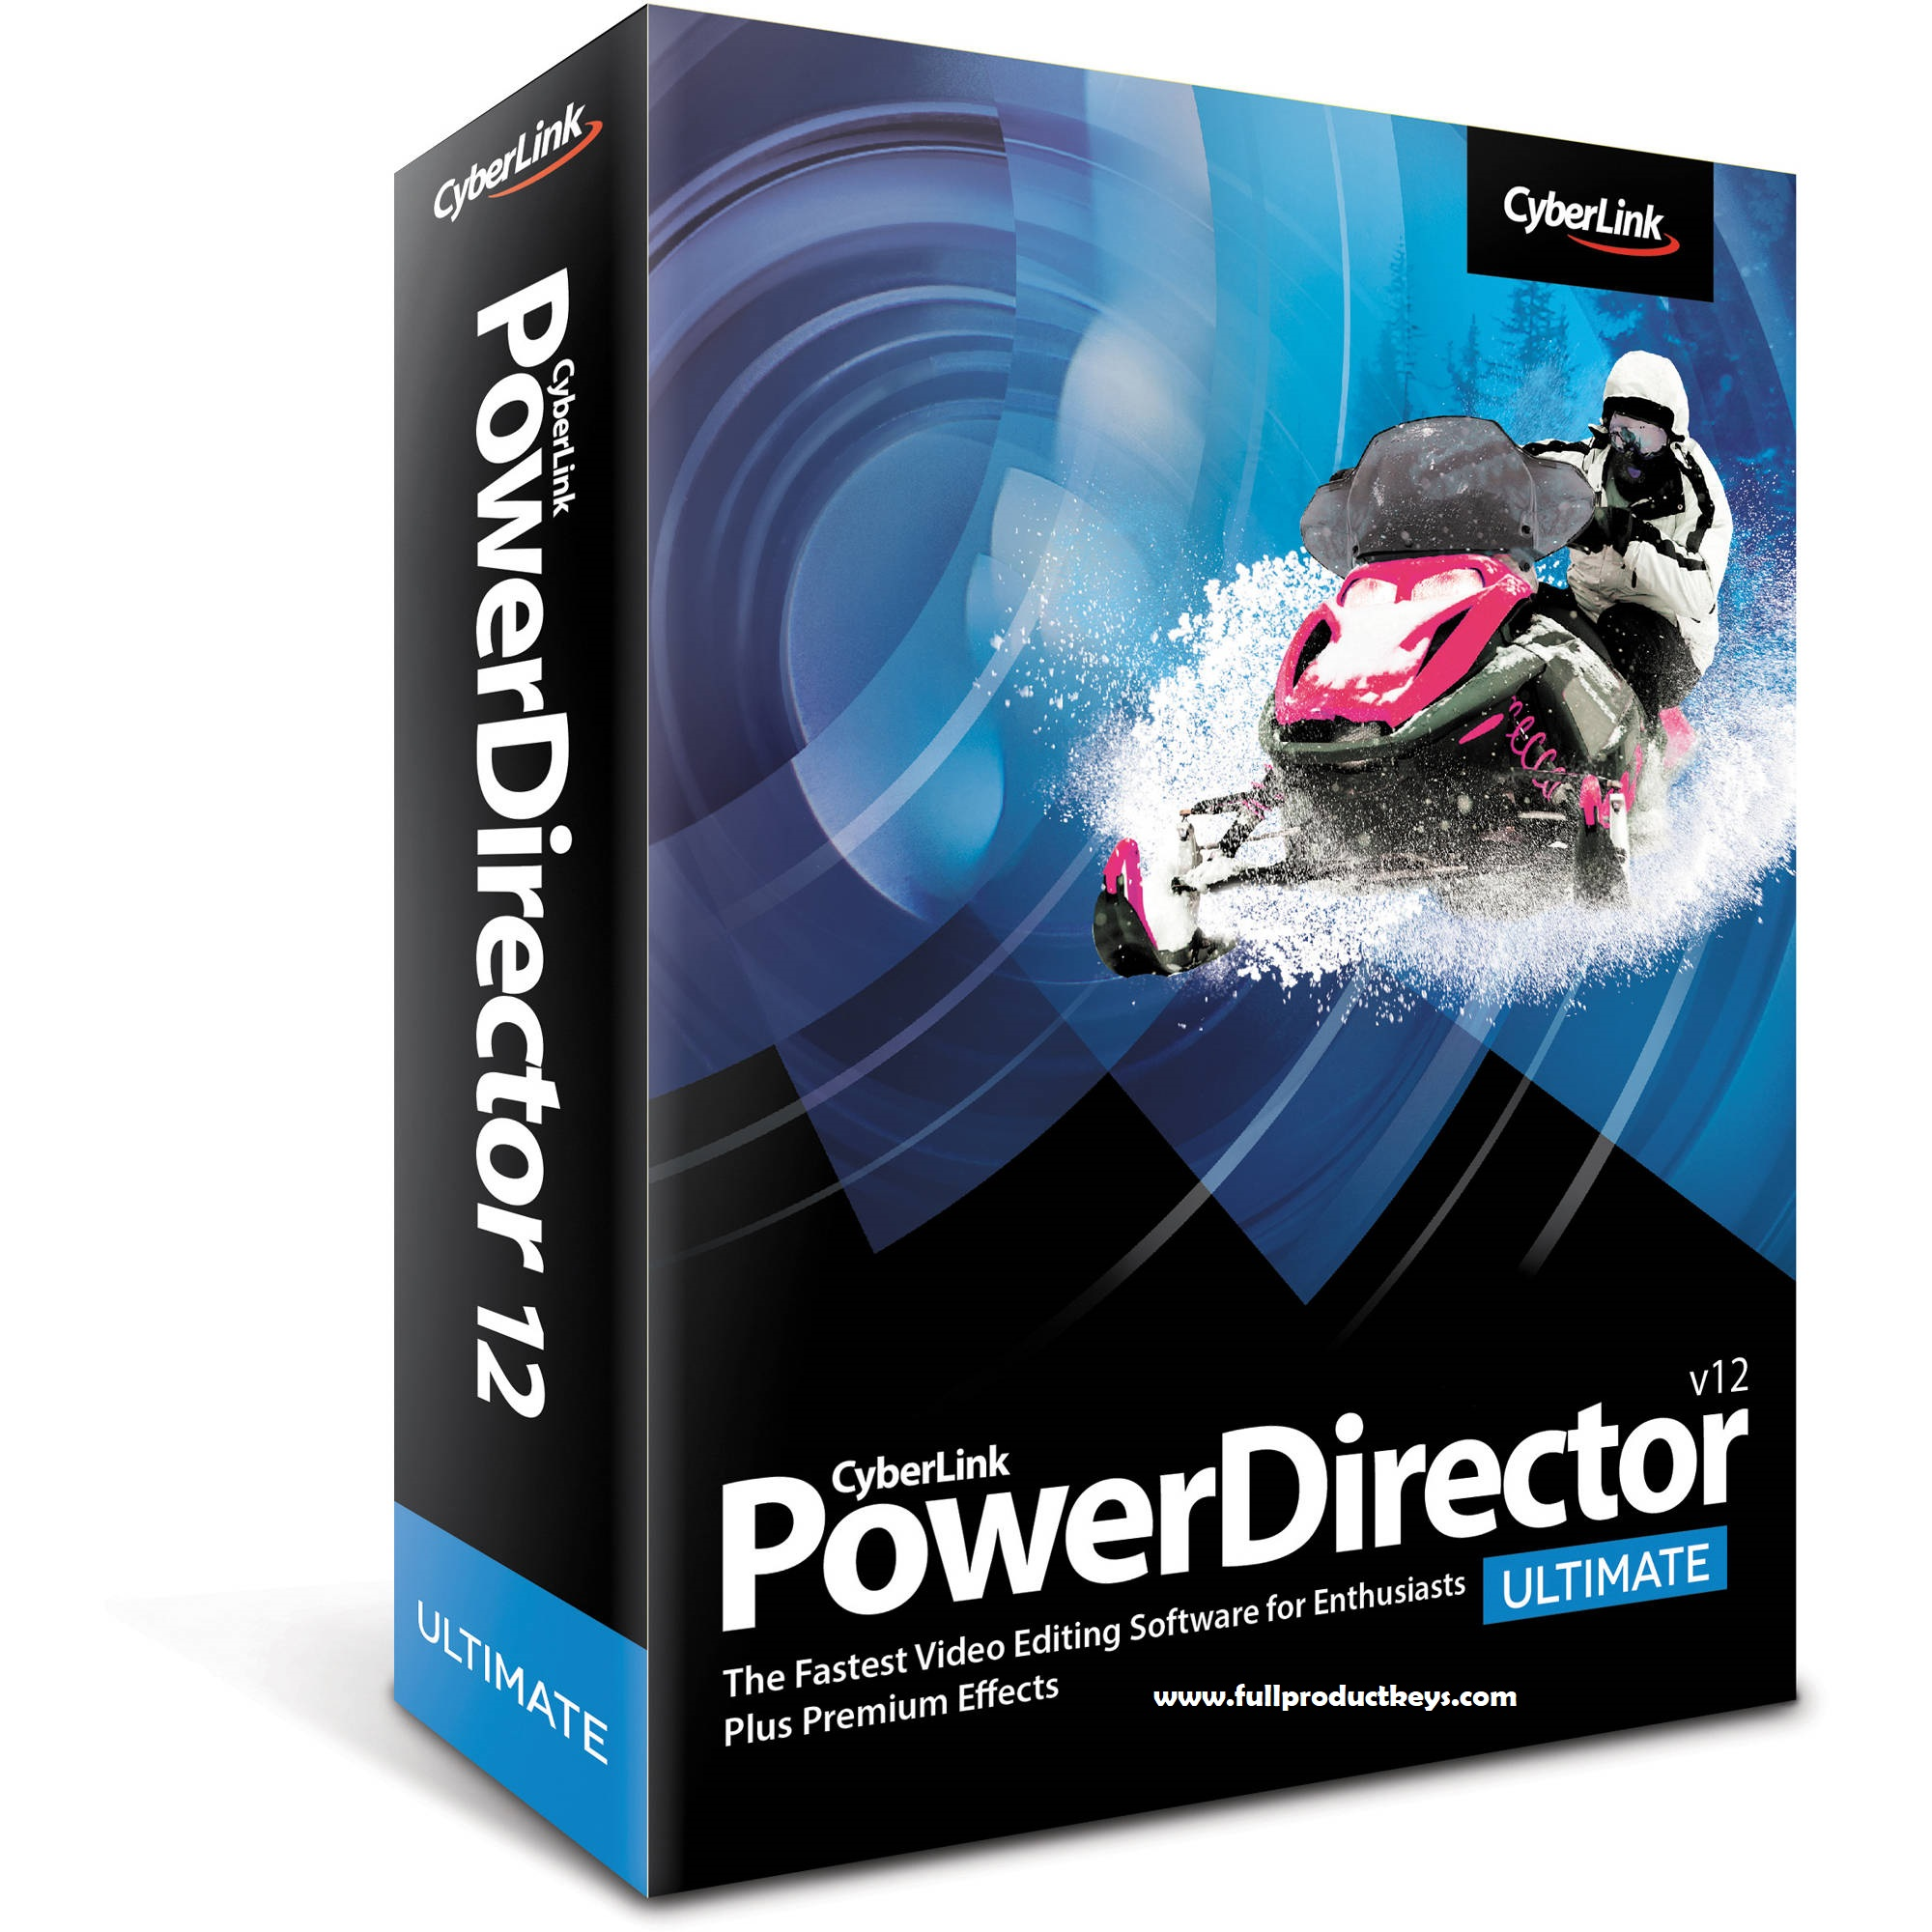 Cyberlink PowerDirector 17 Crack Build 2514 + Keygen Free Download